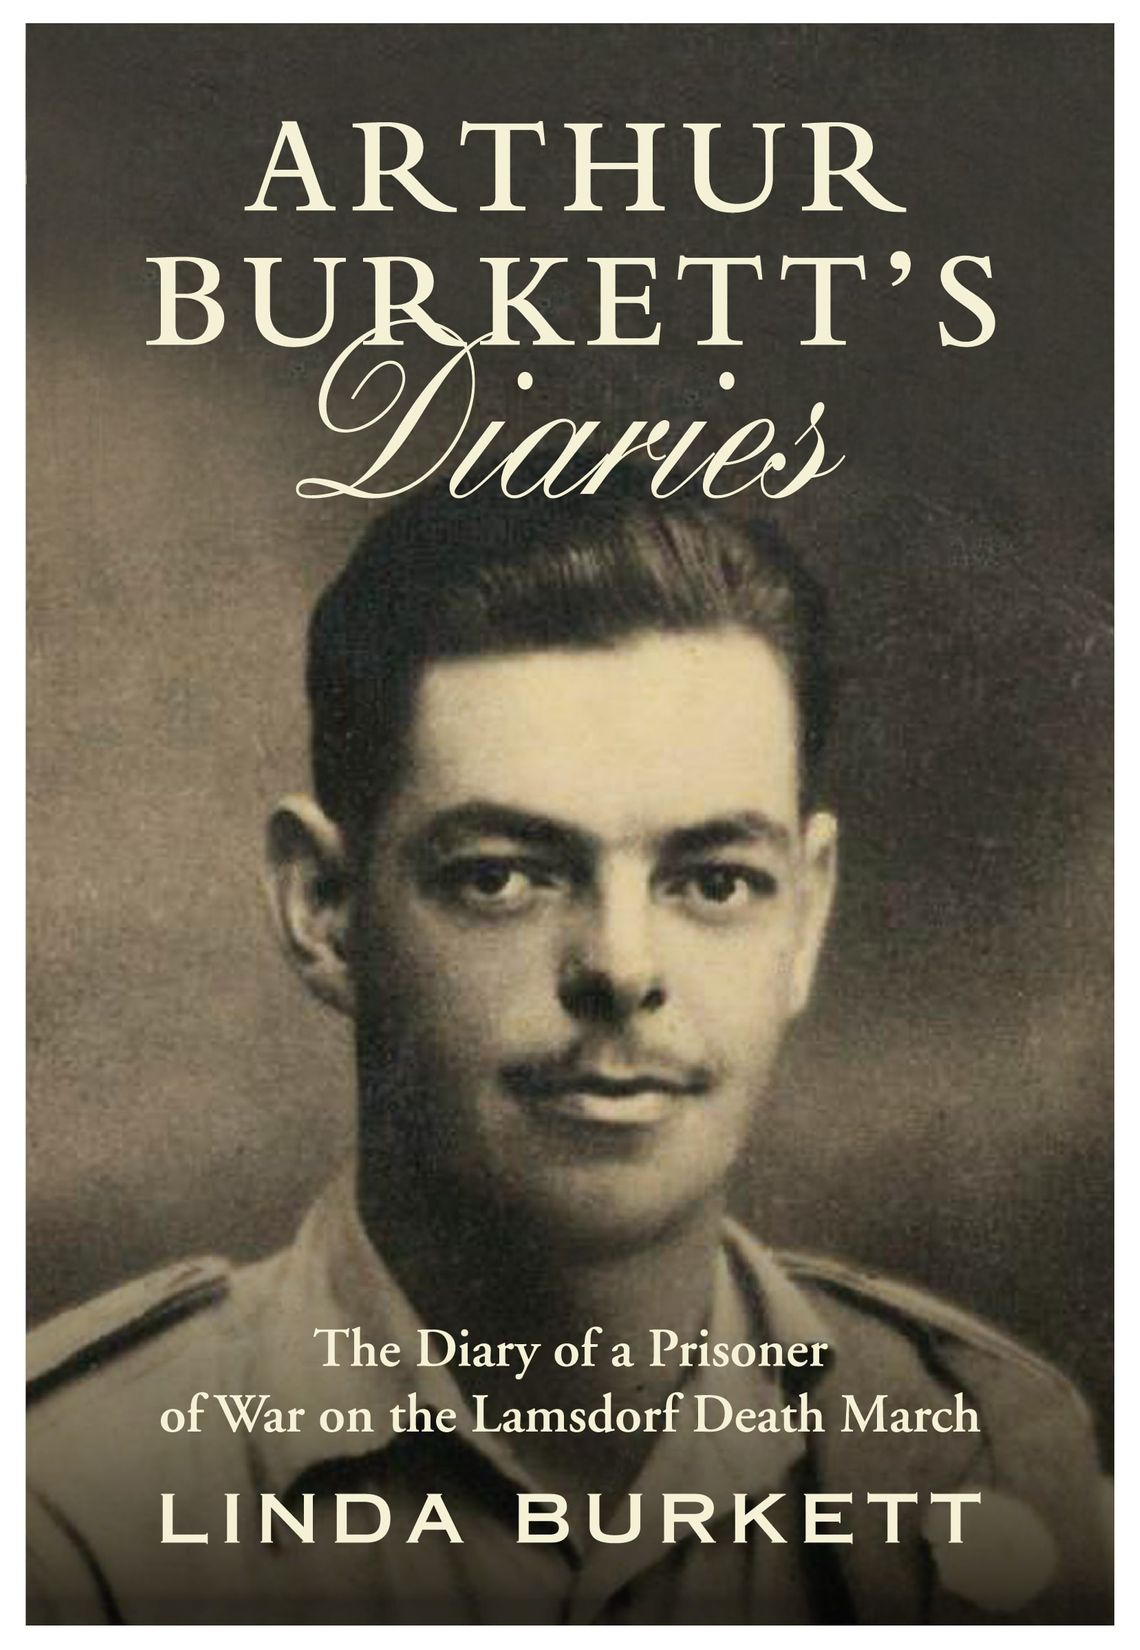 The Story Behind 'Arthur Burkett's Diaries'